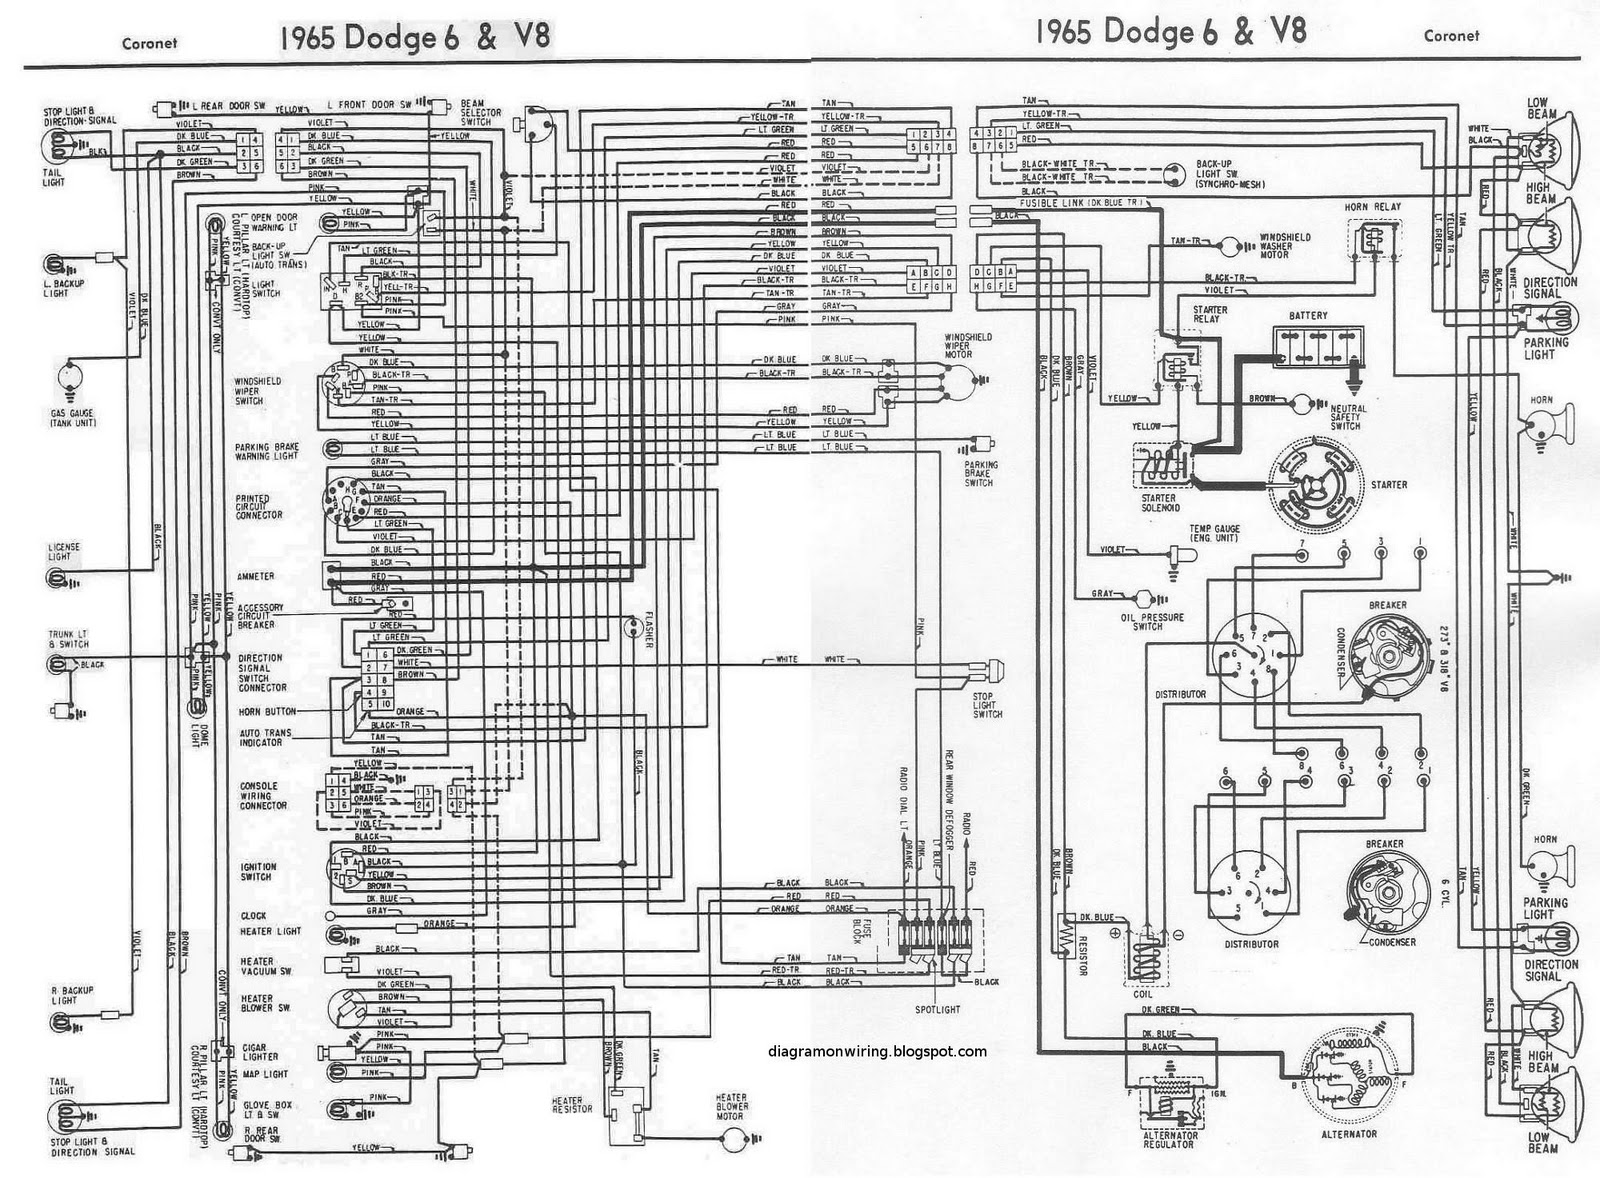 Magnificent 1969 Charger Wiring Diagram Wiring Diagram B2 Wiring Cloud Faunaidewilluminateatxorg